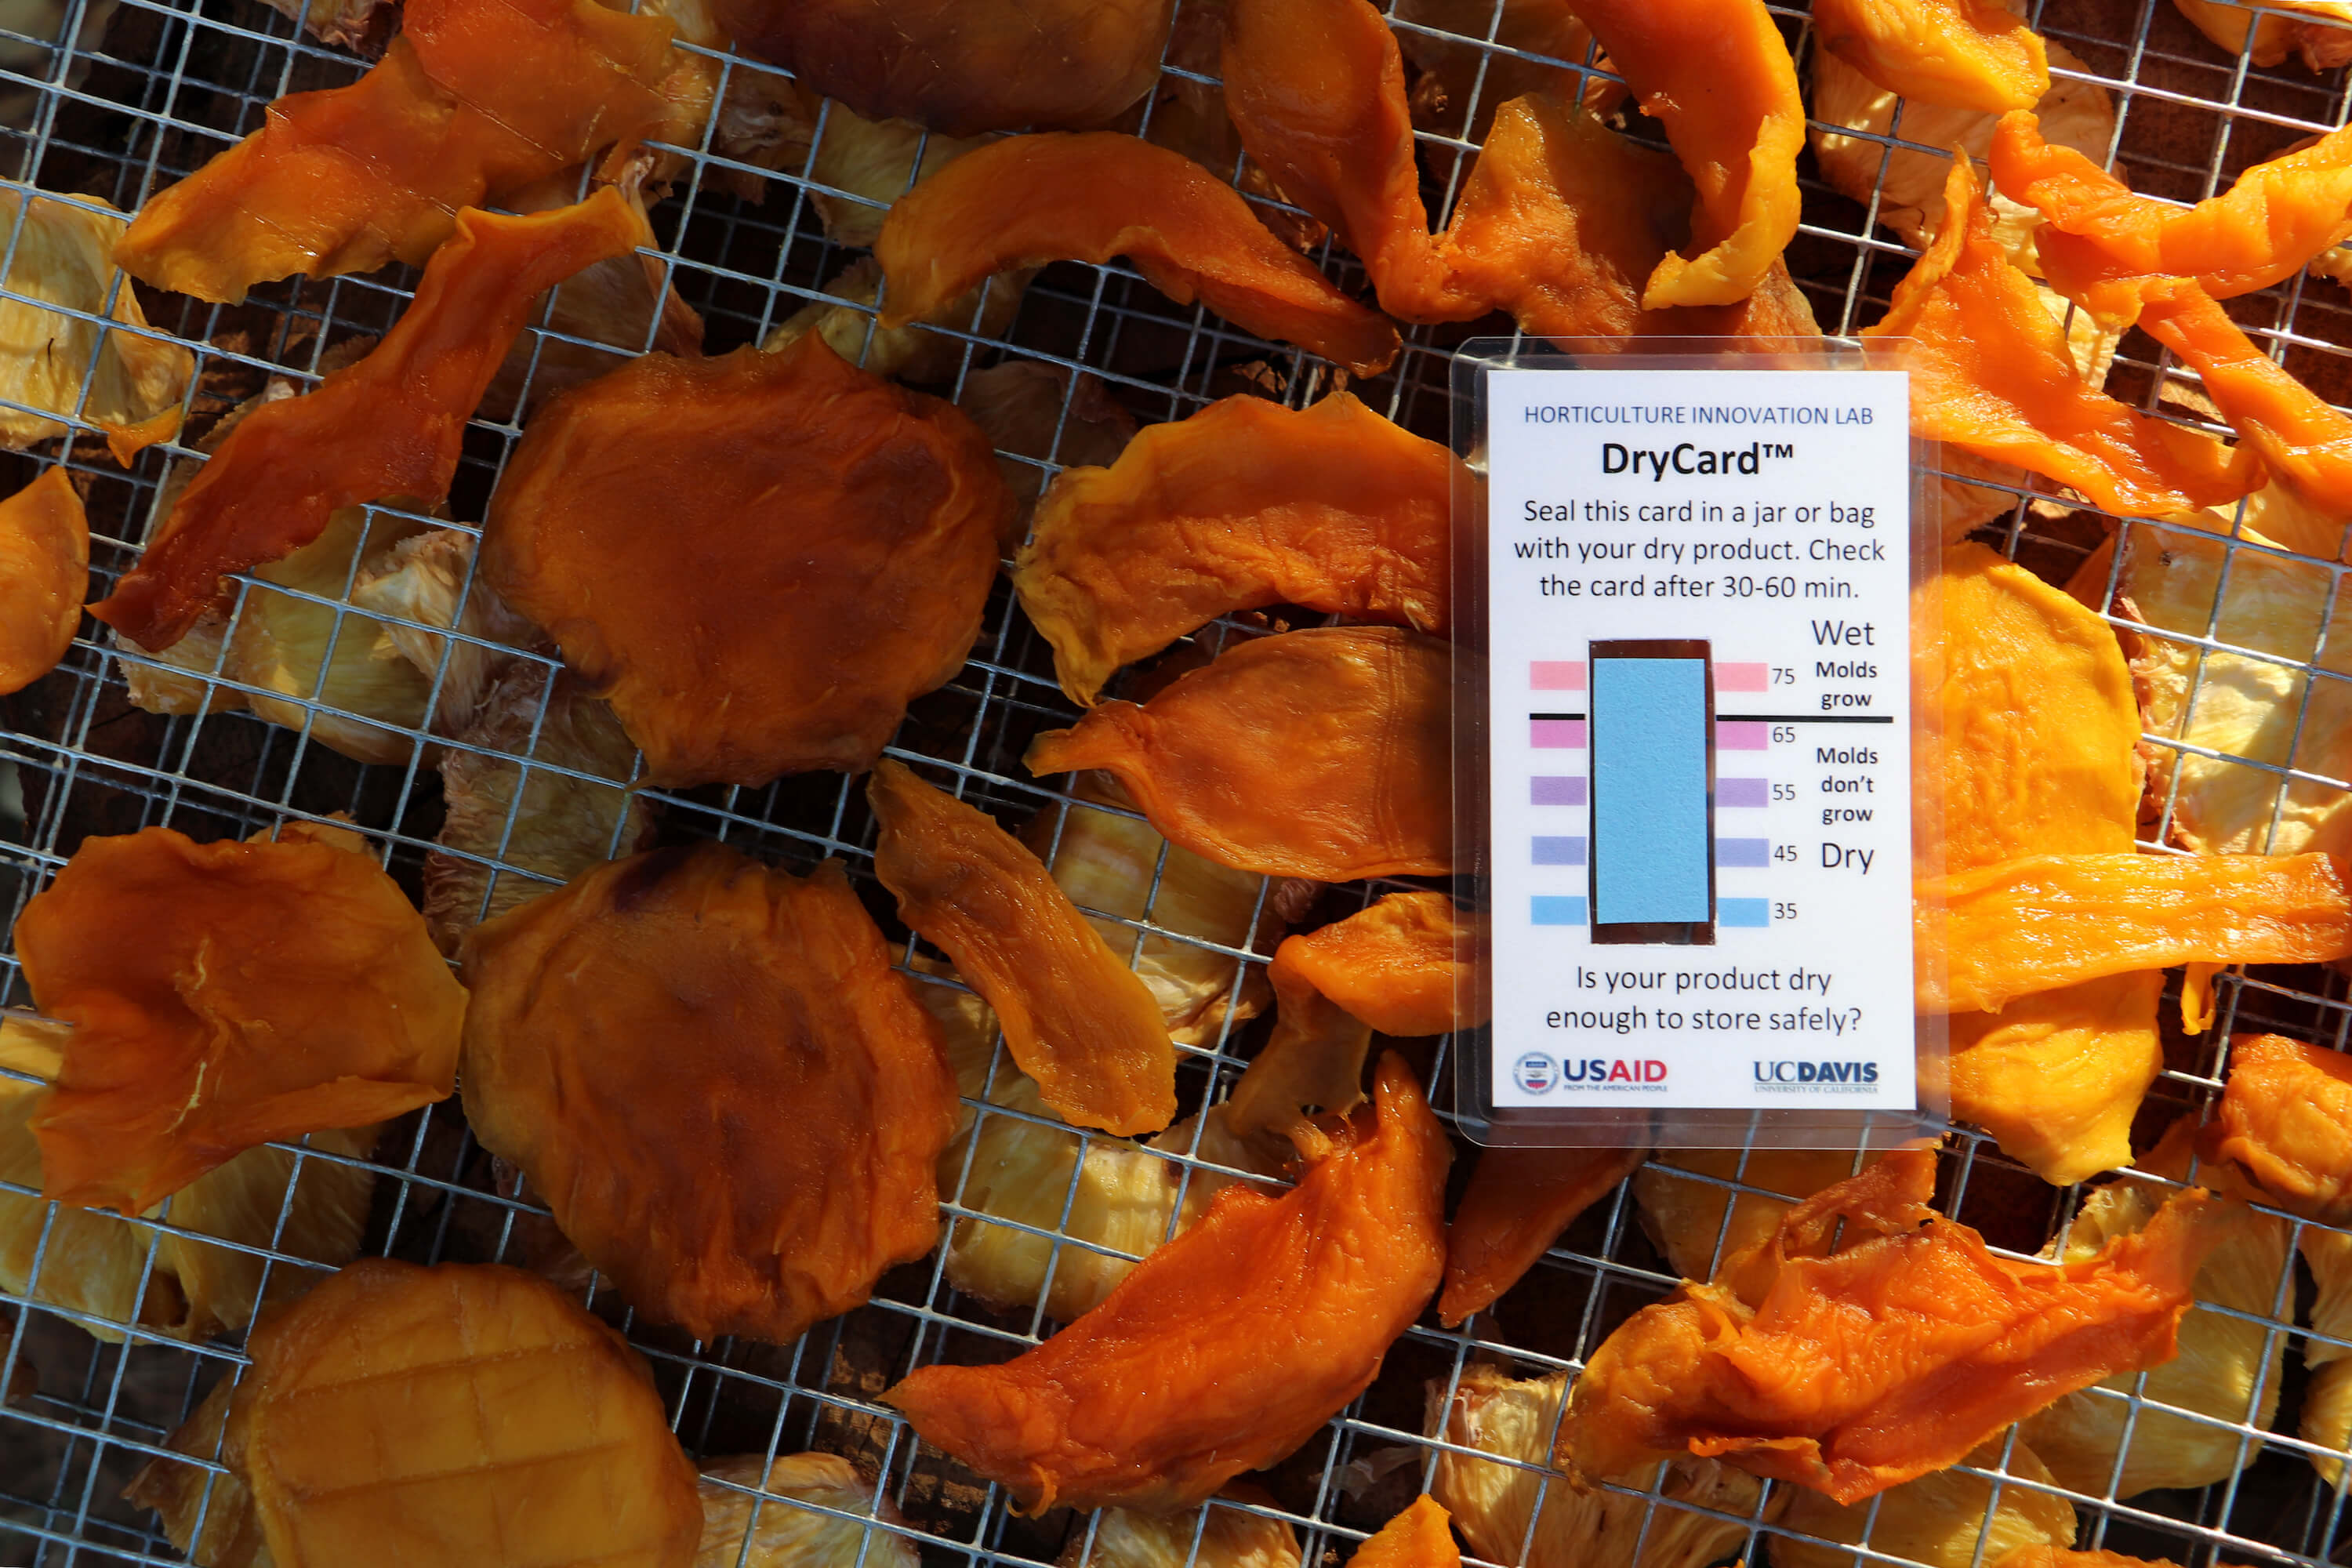 DryCard: Inventing a Low-Cost Solution To Reduce Food Waste | UC Davis